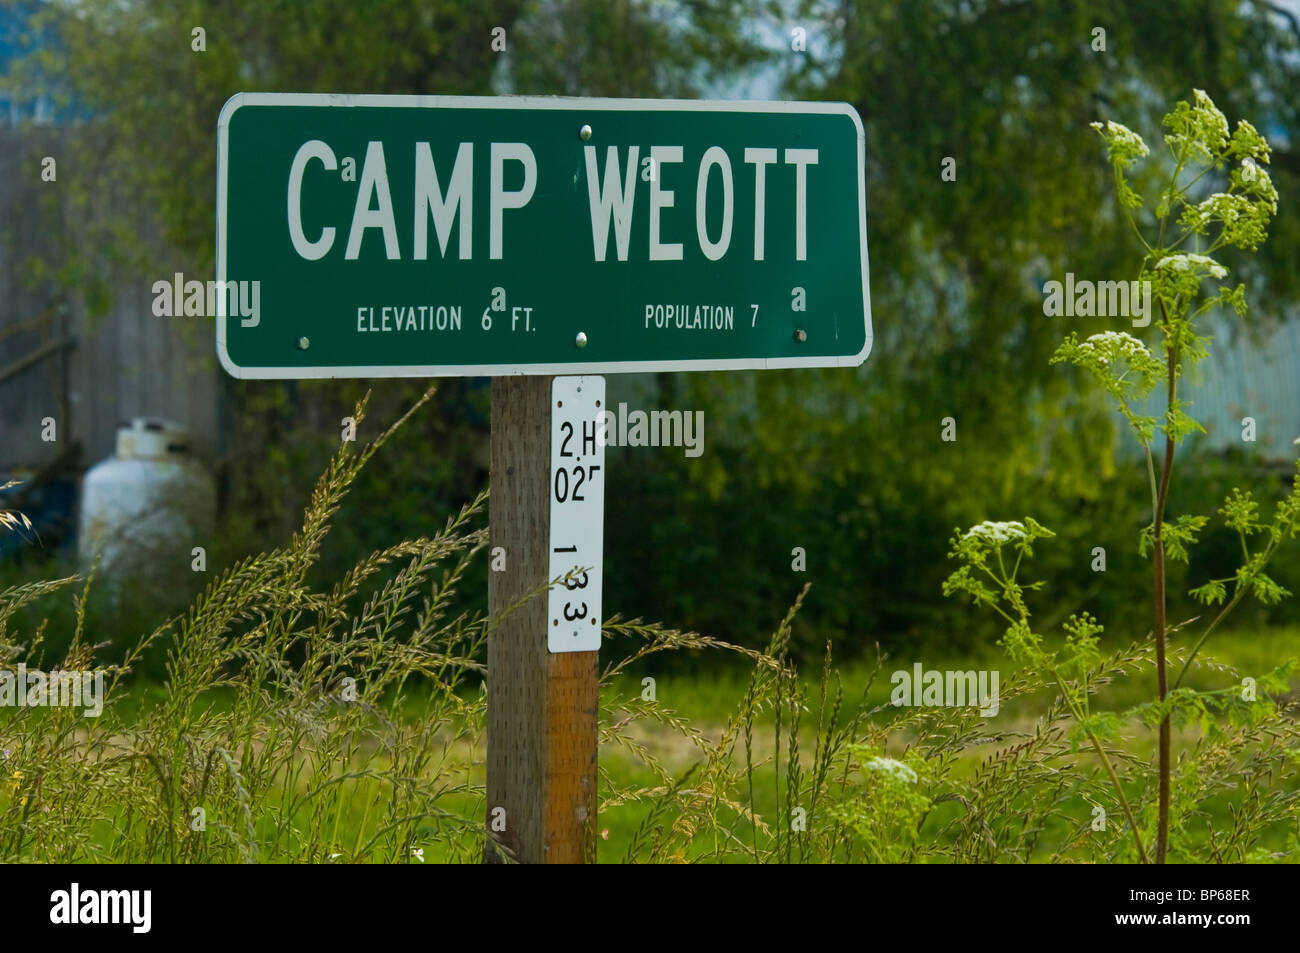 CAMP WEOTT Town population and elevation sign, near Ferndale, California - Stock Image